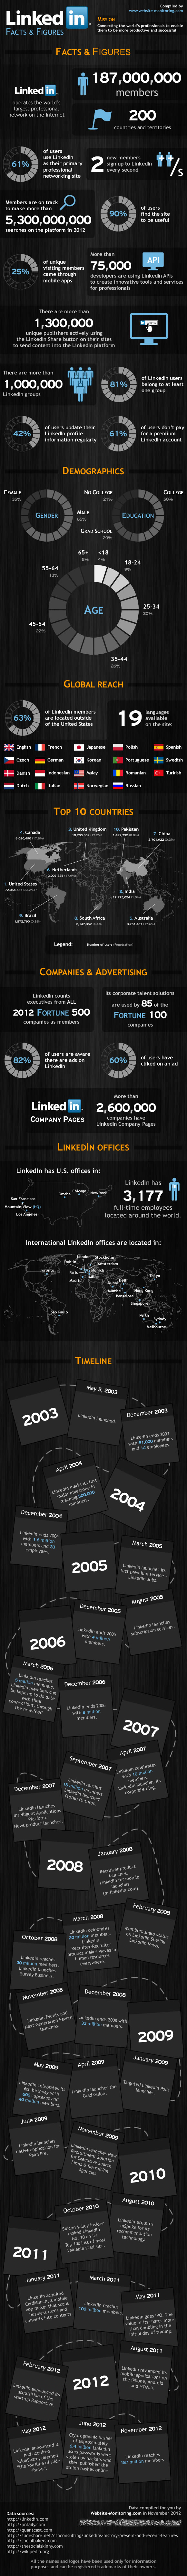 facts & figures for LinkedIn